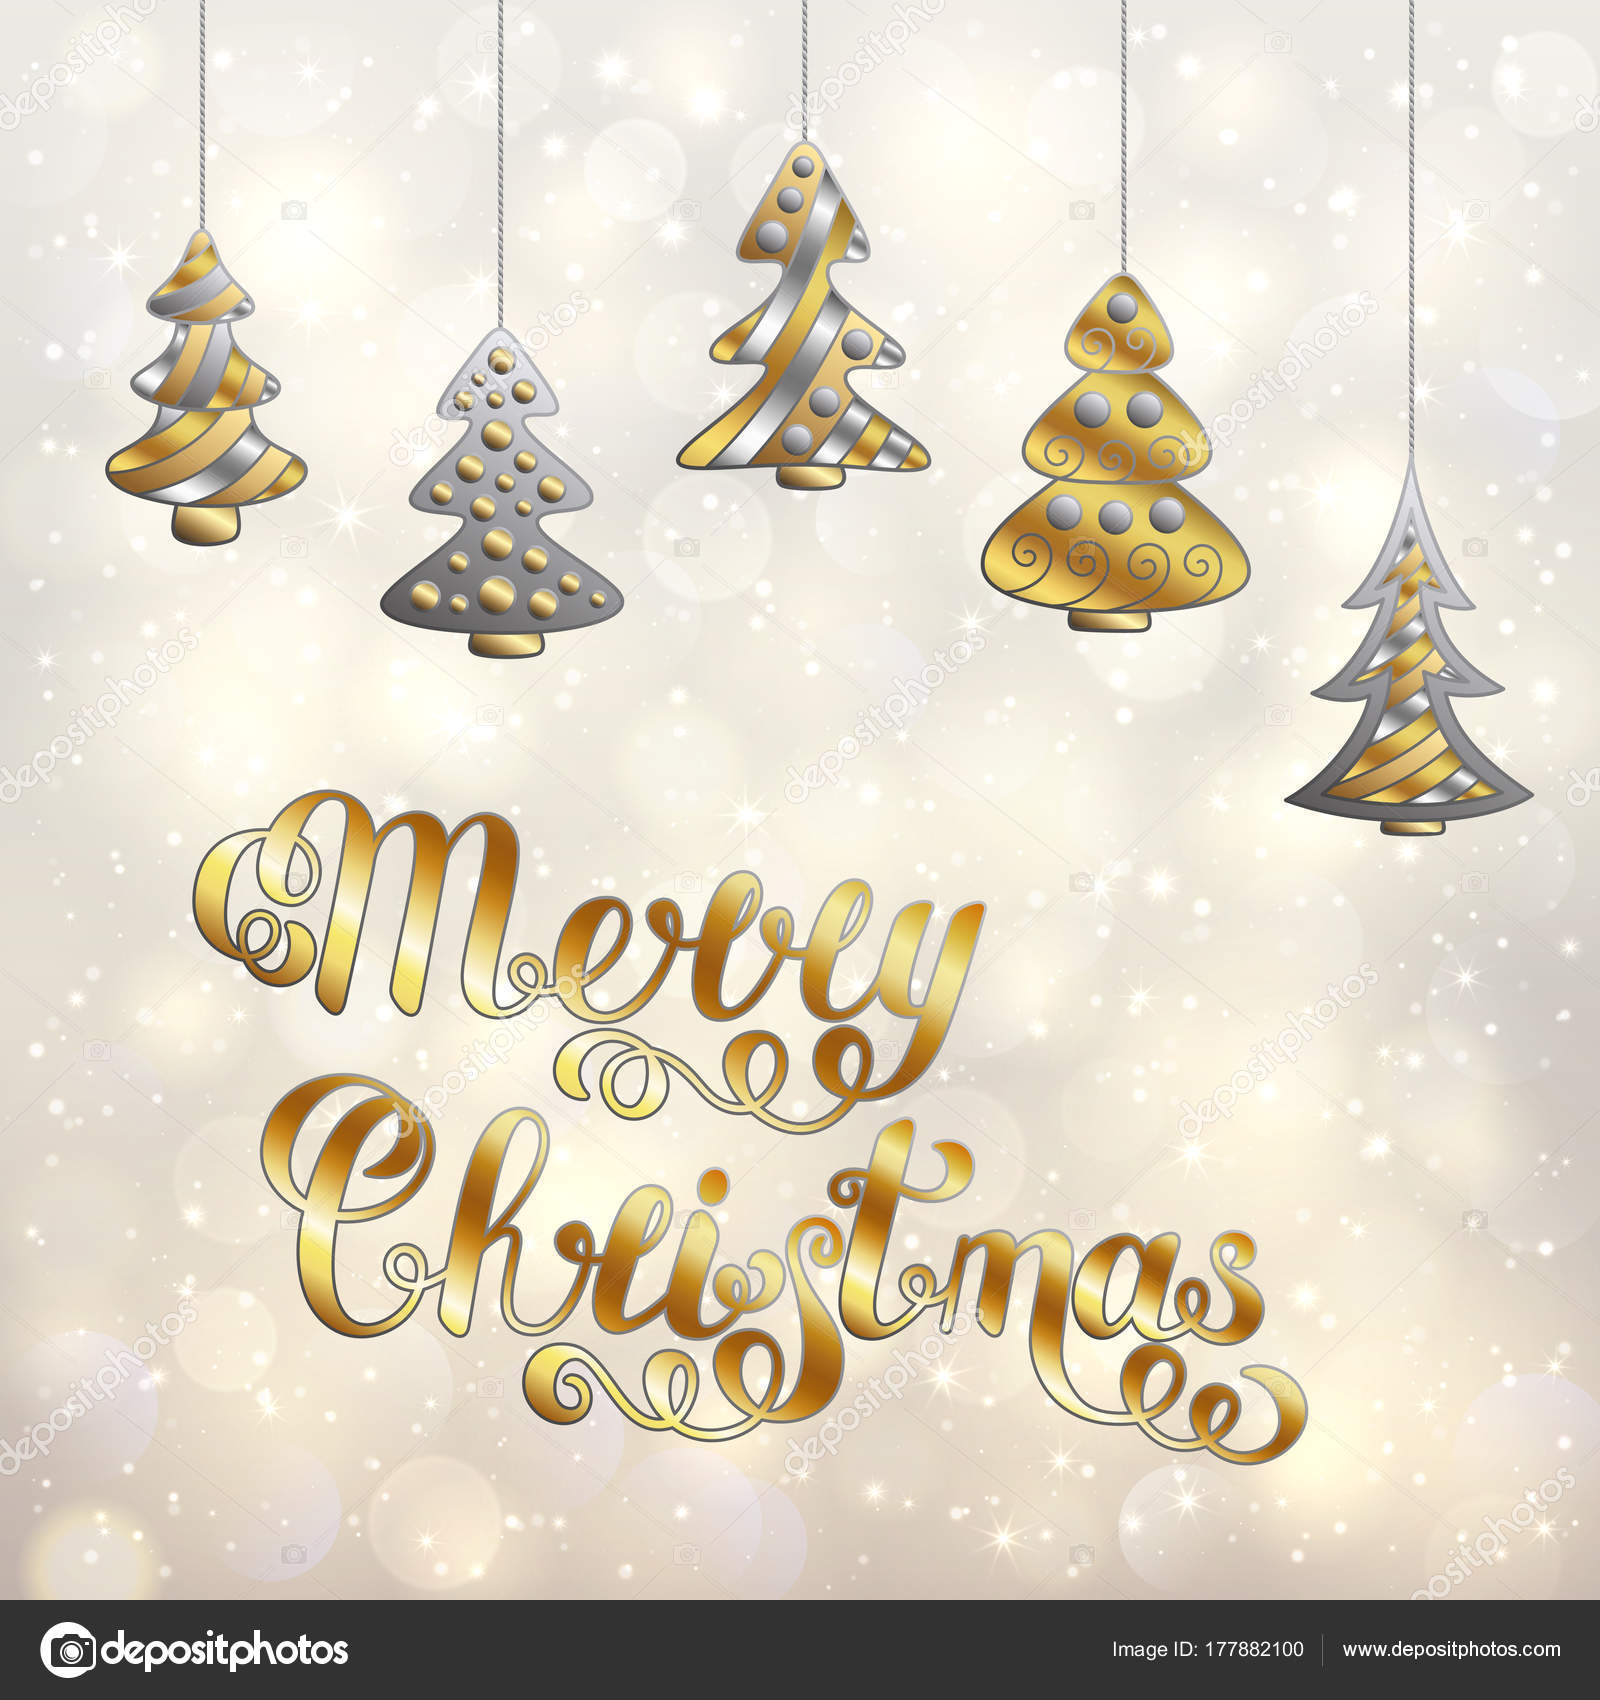 Stylized Accessory Christmas Trees and Lettering Isolated on Lig